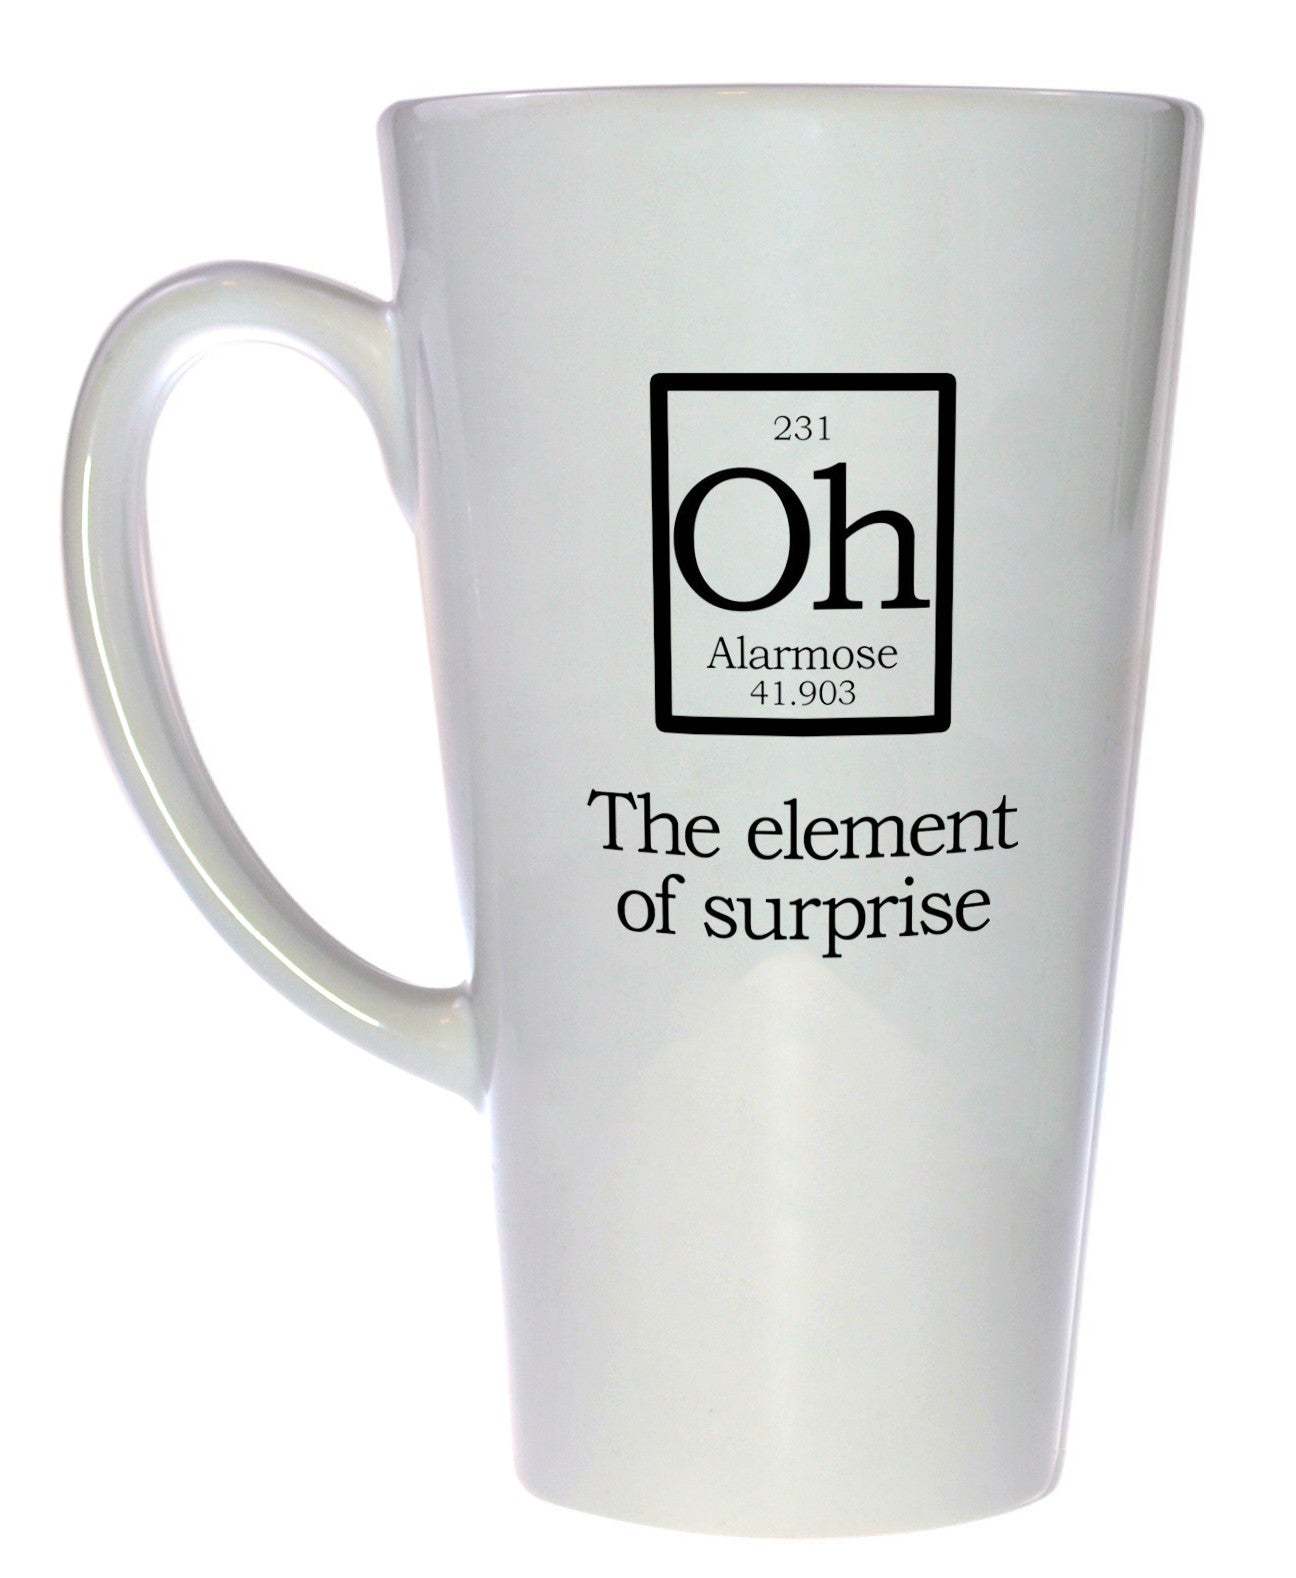 Element of surprise mug fake periodic table chemistry elements element of surprise mug fake periodic table chemistry elements latte size gamestrikefo Image collections